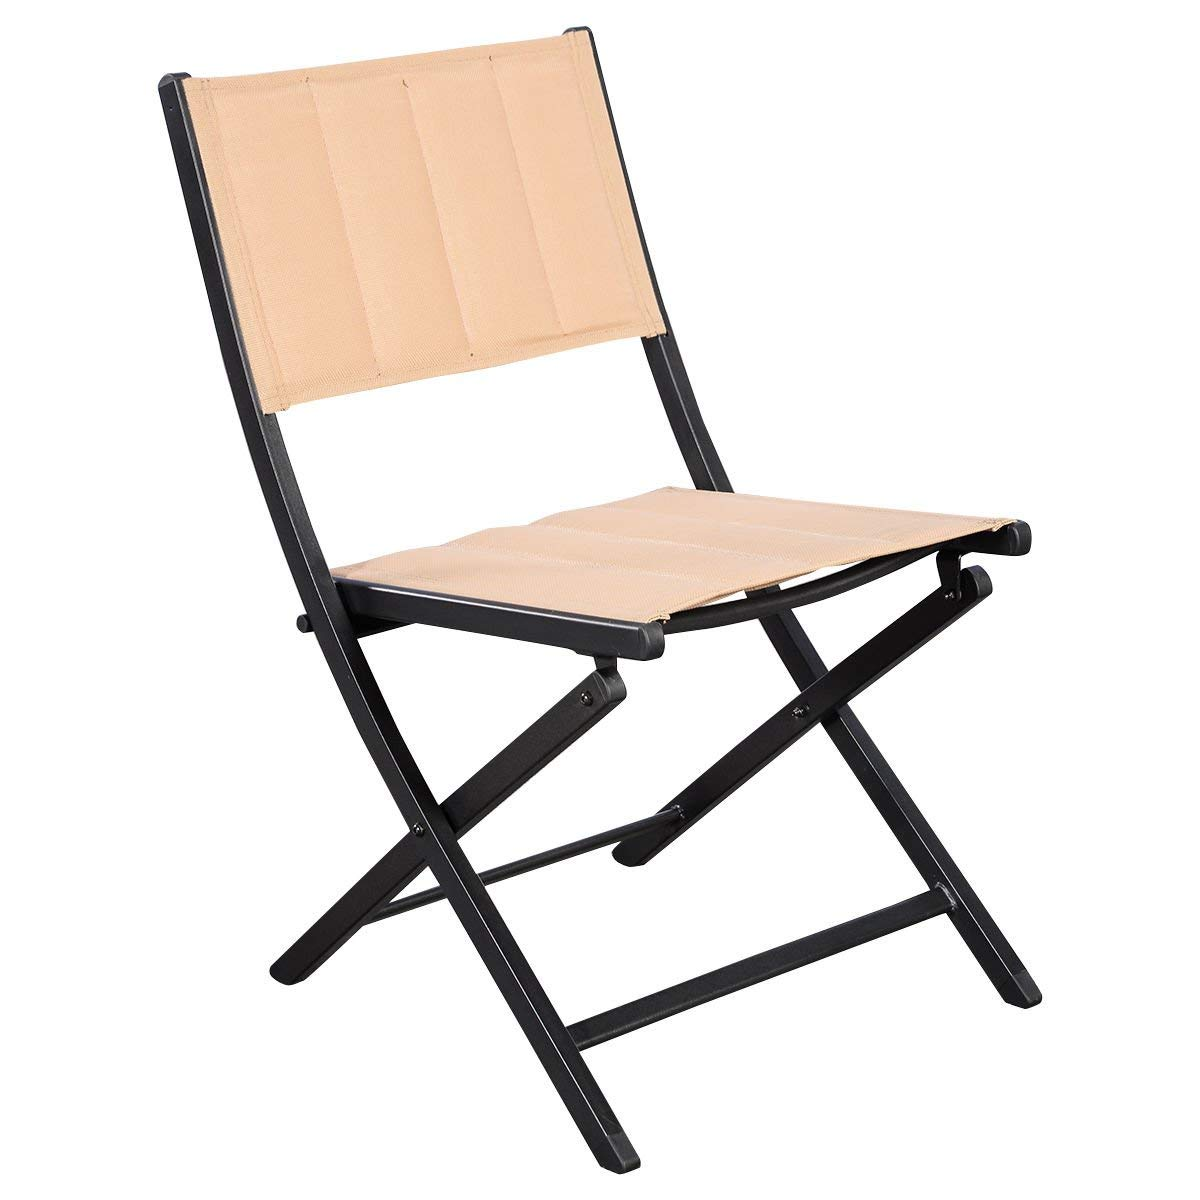 KCHEX>5 PCS Patio Outdoor Folding Chairs Table Furniture Set Backyard Bistro>This is Our 5 Pieces Outdoor Folding Chairs and Table Furniture Set, Including 4 Folding Chairs and 1 Round Table.